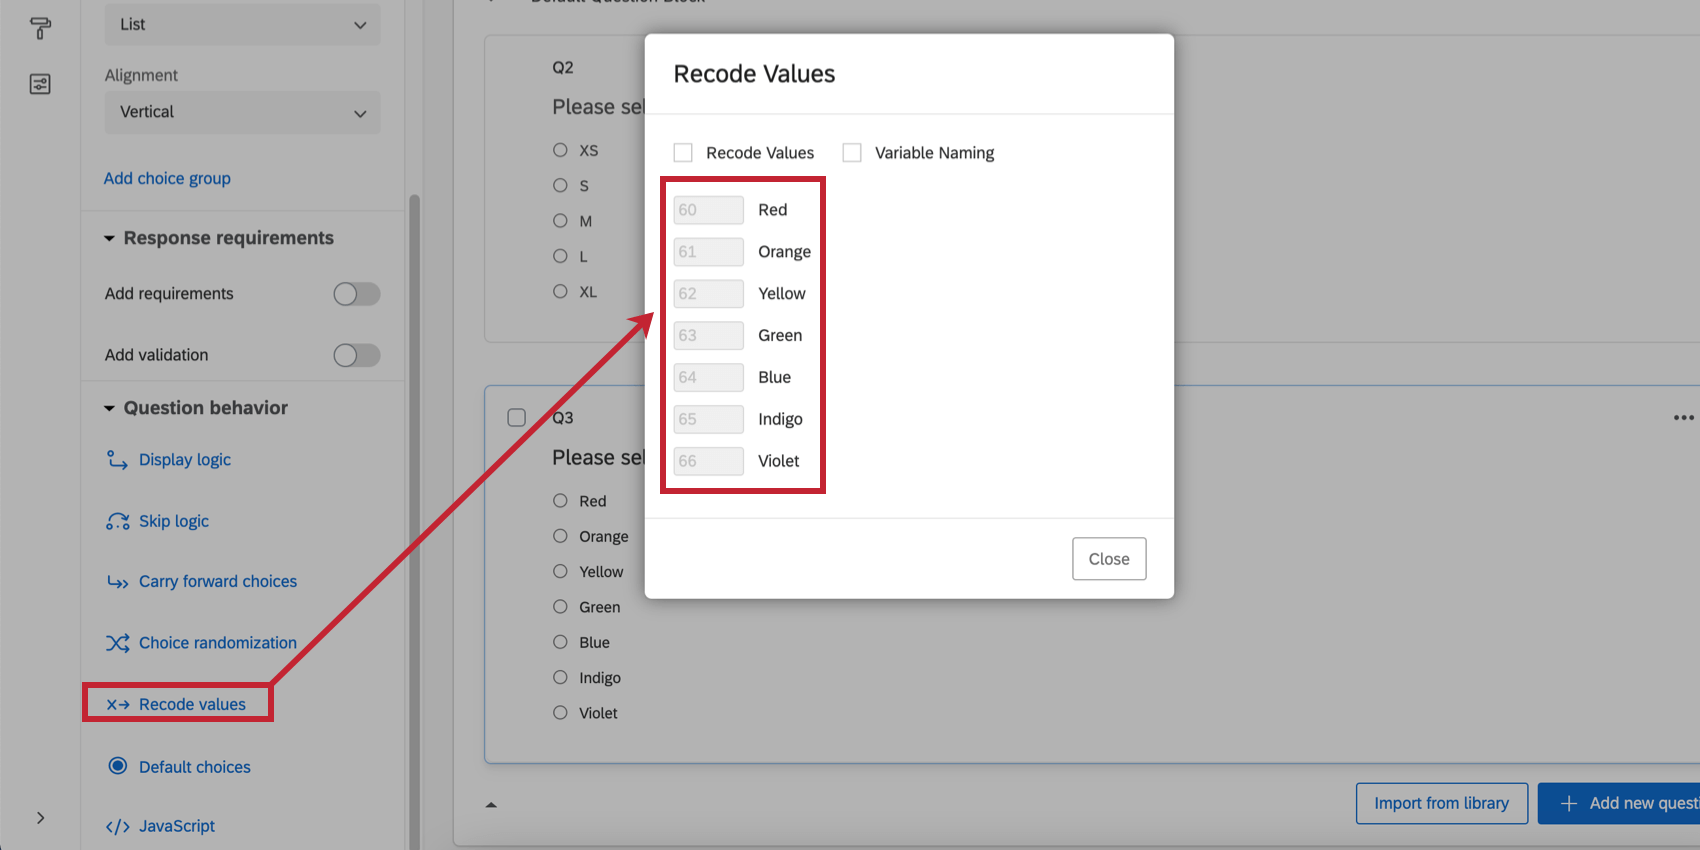 the recode values window open in the survey editor